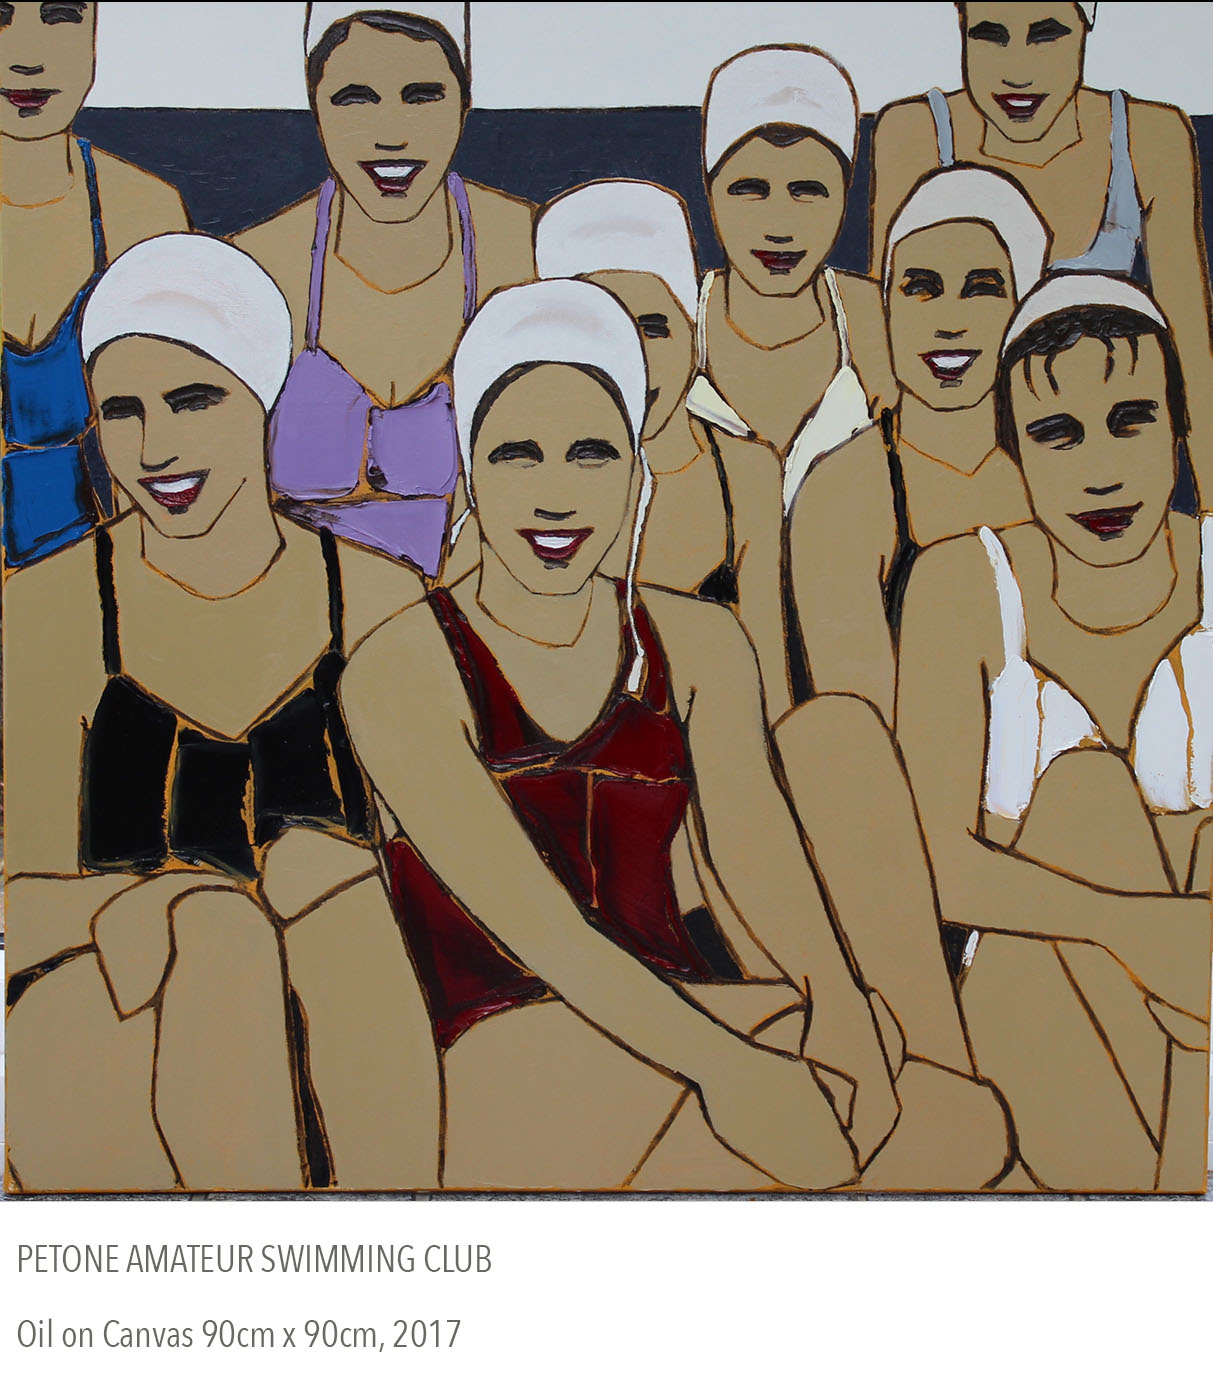 2017 oil painting called Petone Amateur Swimming Club